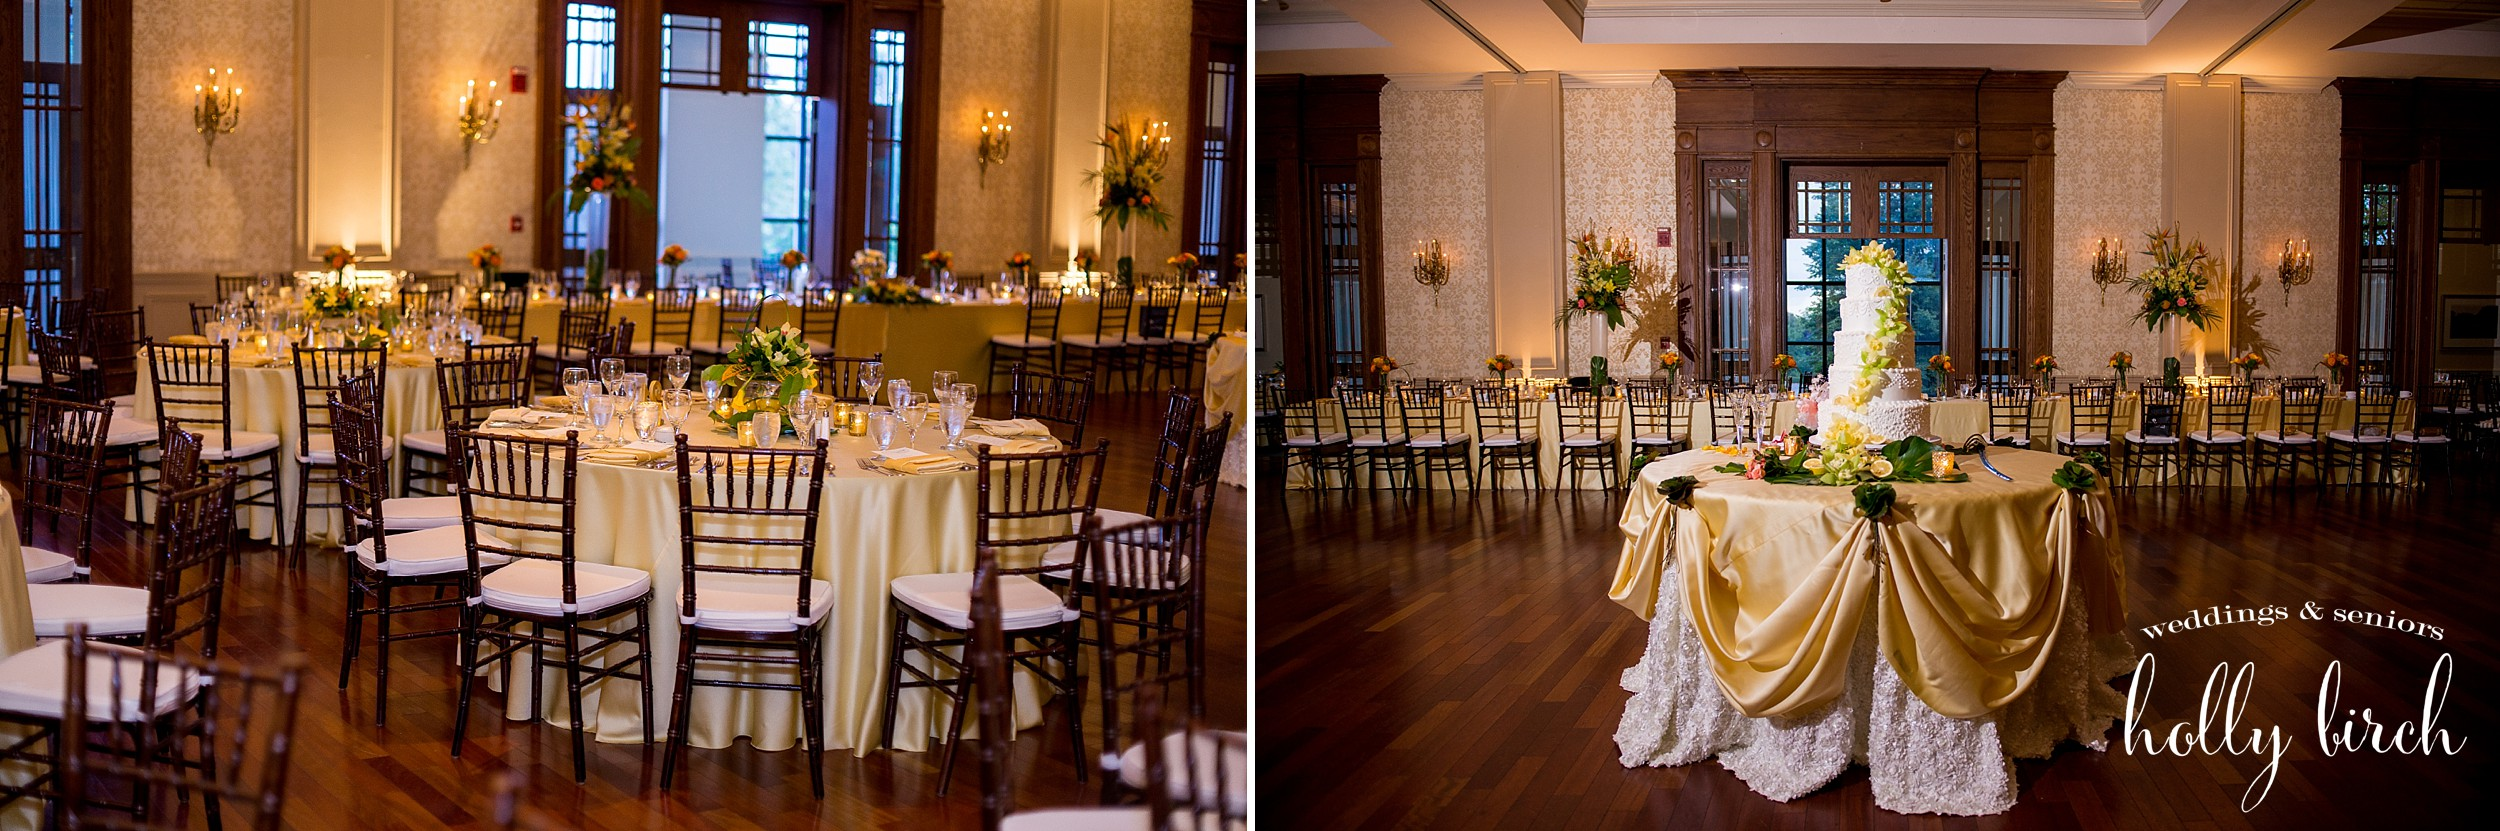 Ballroom at country club with yellow linens